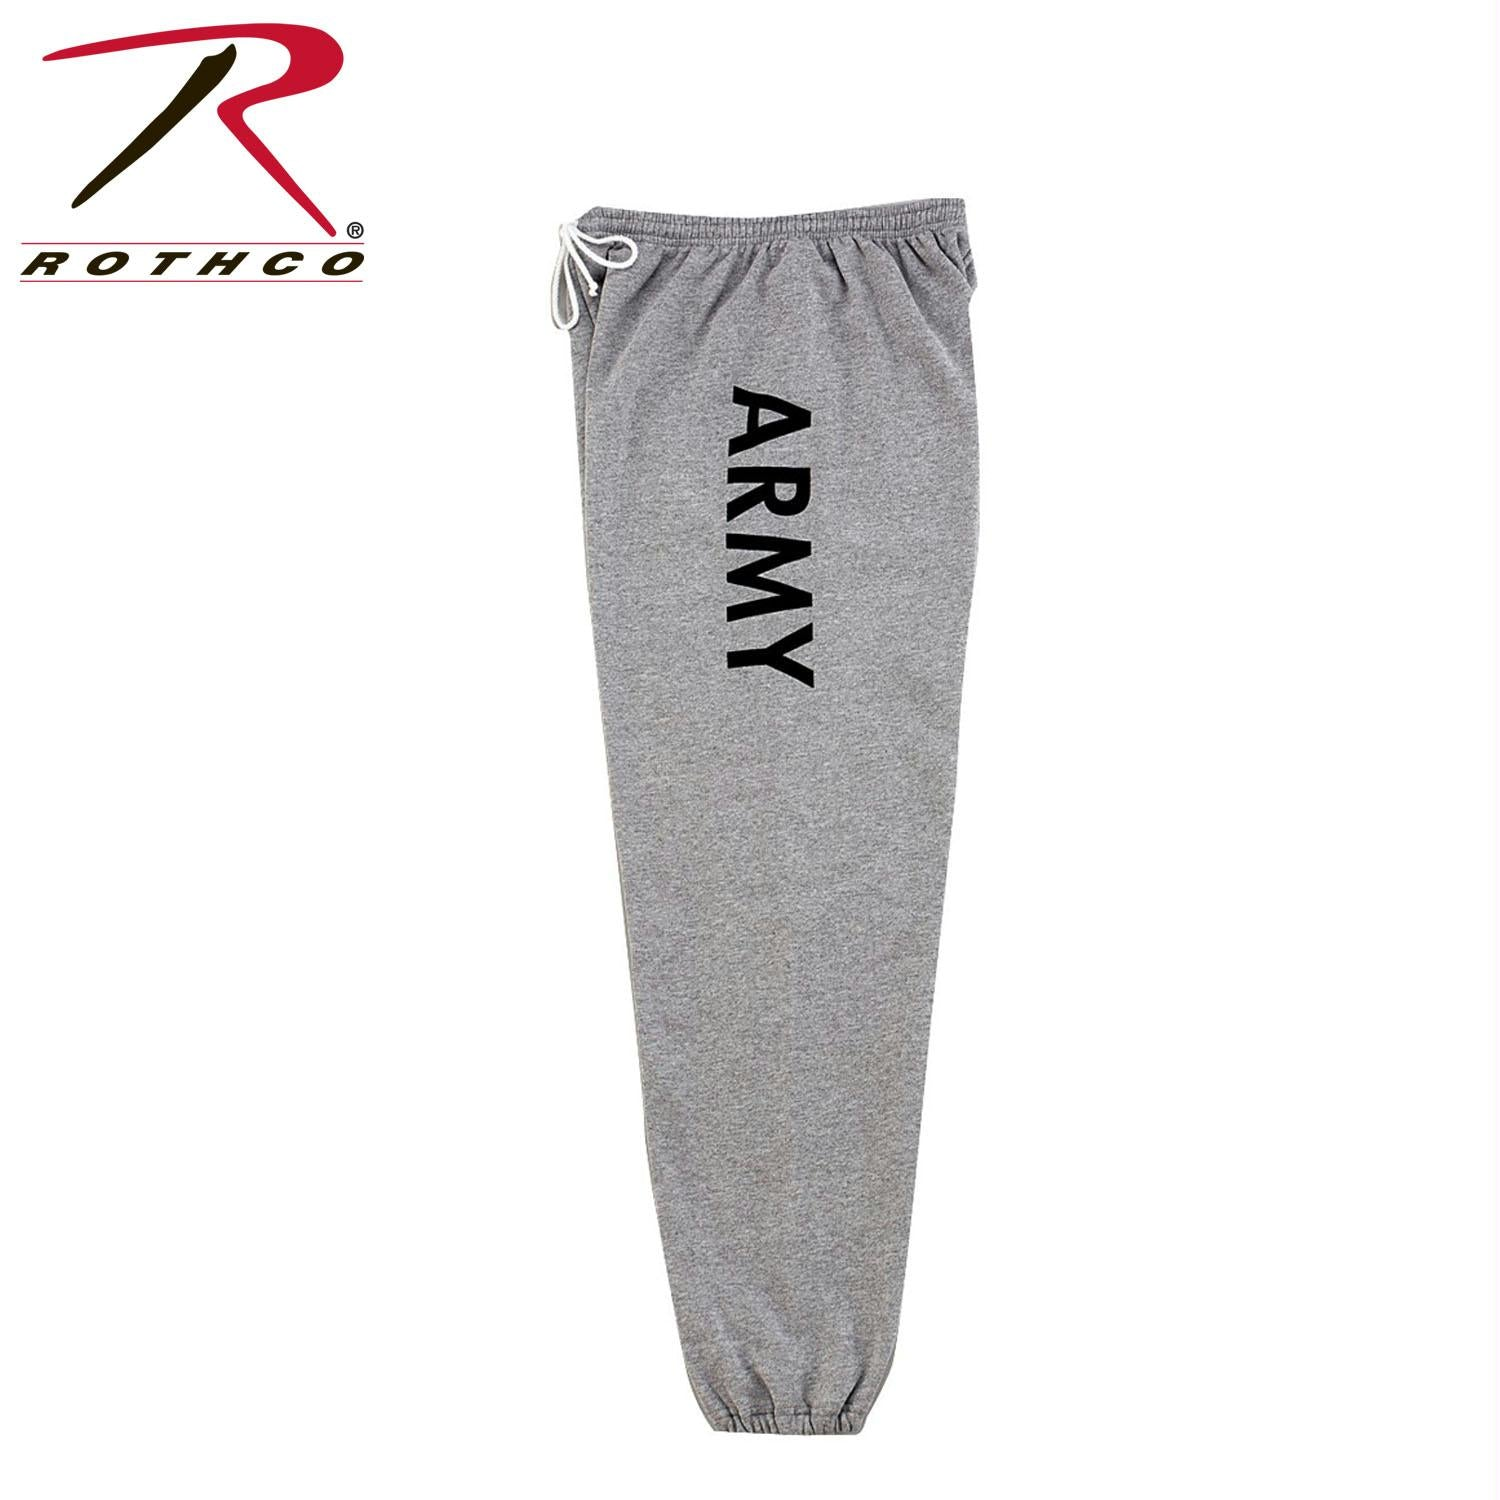 Rothco Physical Training Sweatpants - Army / 2XL